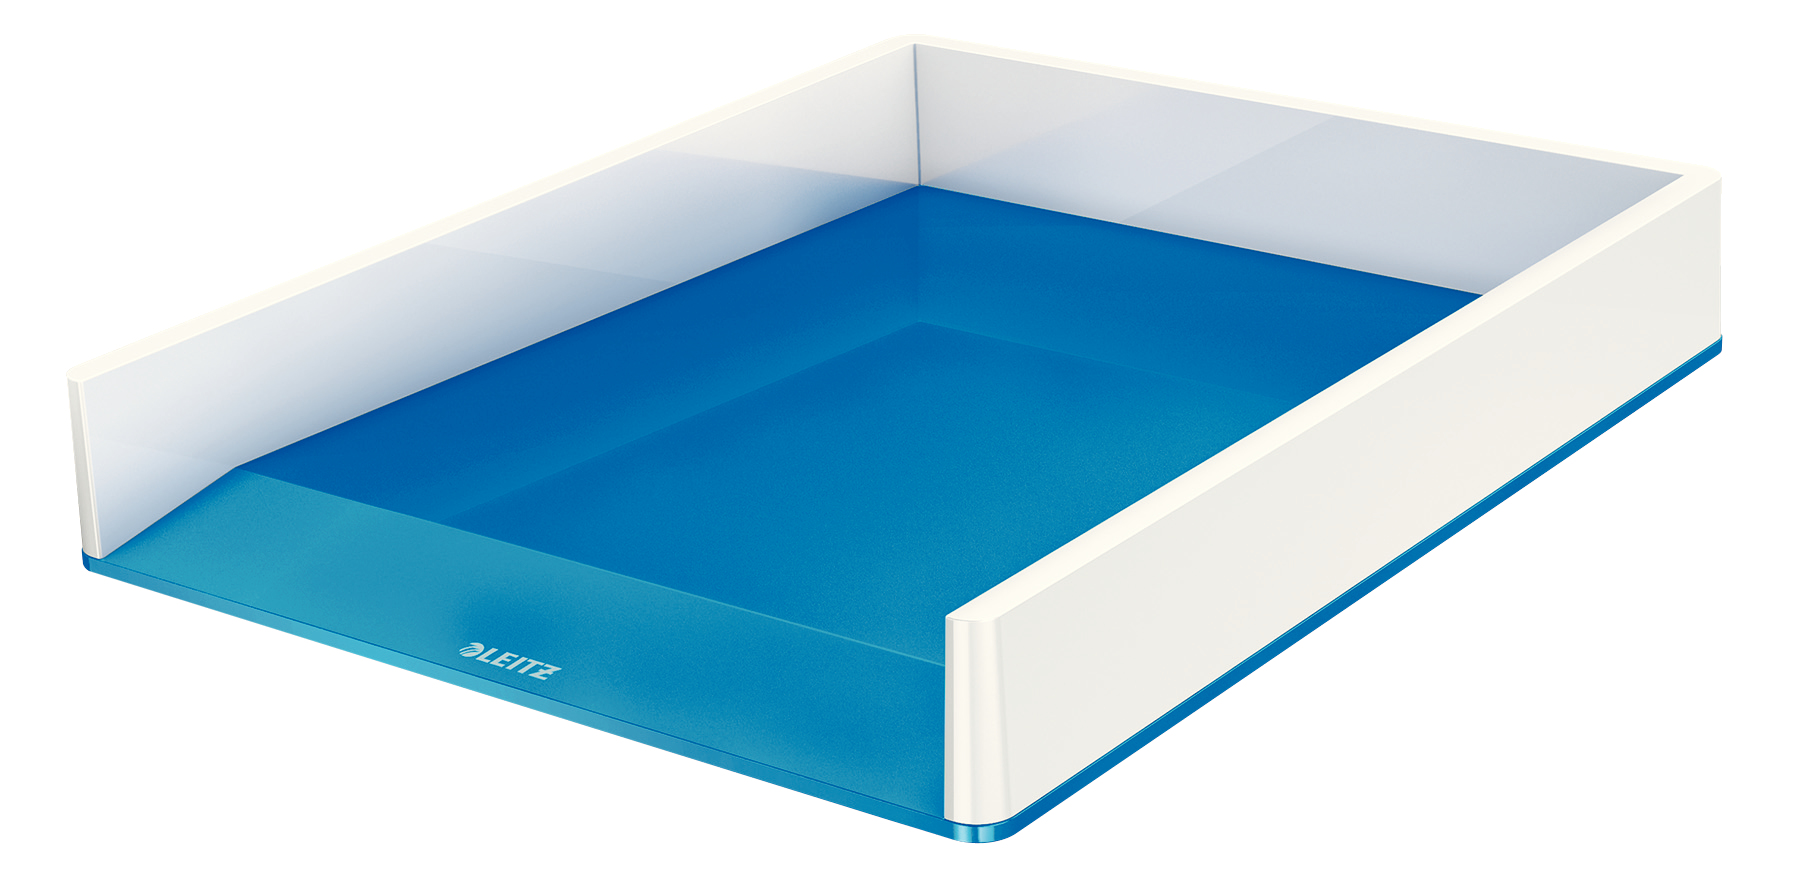 esselte Leitz Wow Duo Colour Letter Tray A4 Blue 53611001 (pk1) 53611036 - AD01